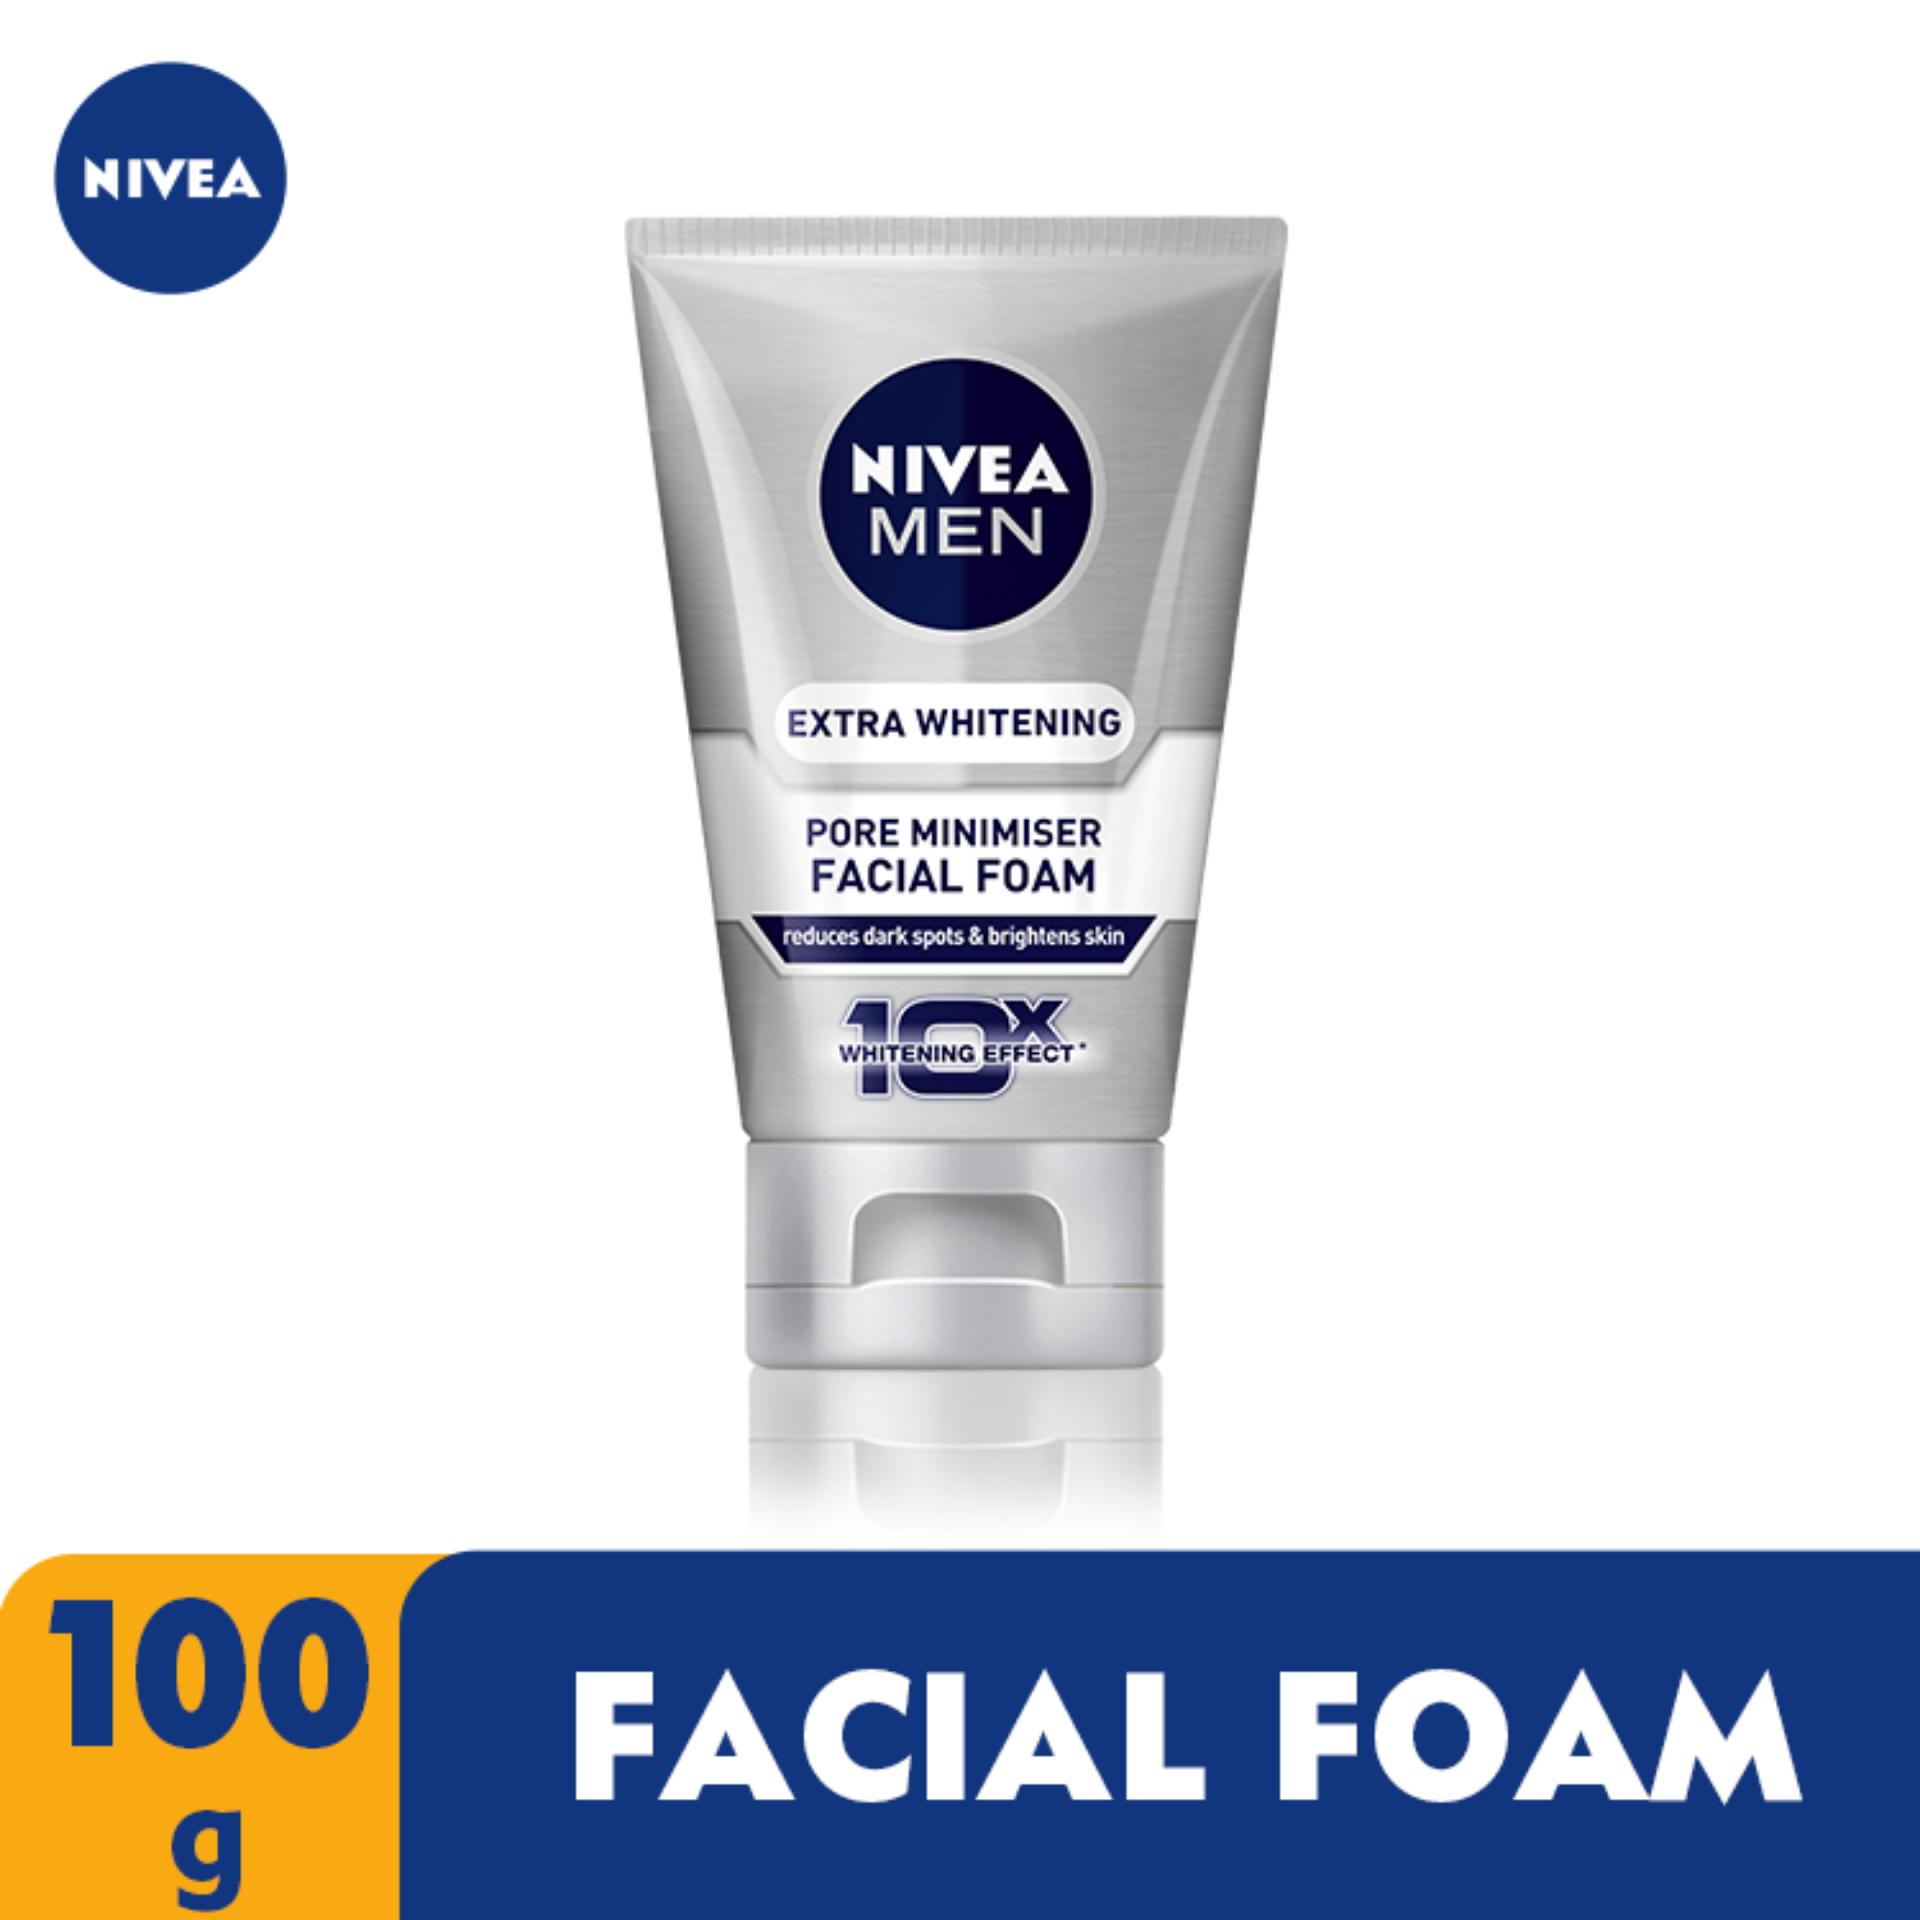 NIVEA for Men Extra Whitening Pore Minimiser Facial Foam 100g